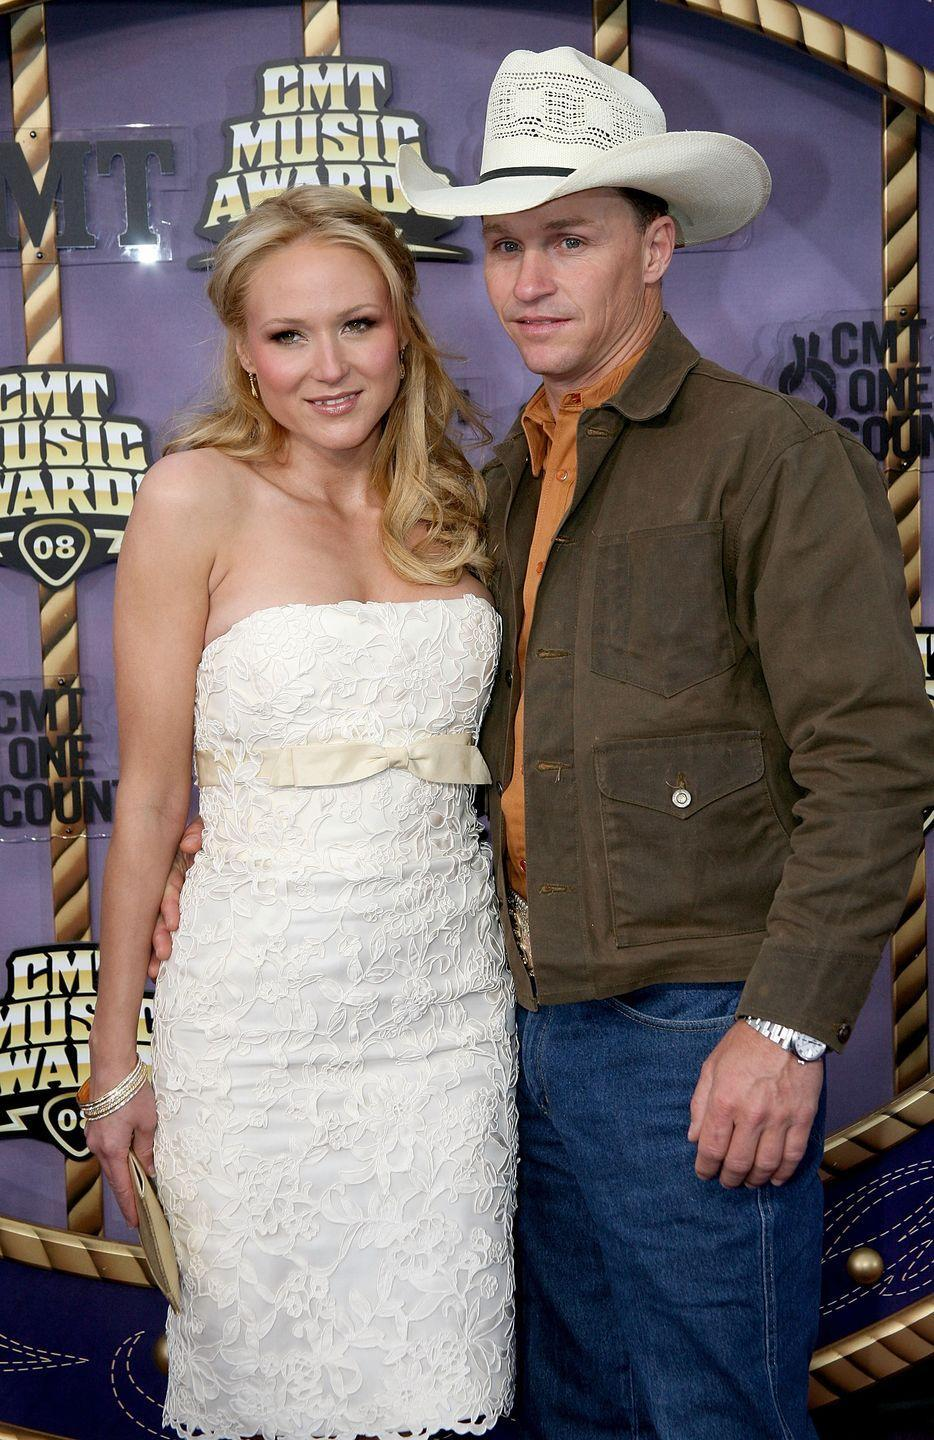 """<p>Country singer Jewel wrangled herself a perfect match when she met professional rodeo rider Ty Murray. After 10 years together, they eloped in the Bahamas — just the two of them. """"To pull off the wedding quietly made it magical,"""" Jewel told <a href=""""https://people.com/celebrity/first-photo-jewels-secret-wedding/"""" rel=""""nofollow noopener"""" target=""""_blank"""" data-ylk=""""slk:PEOPLE"""" class=""""link rapid-noclick-resp"""">PEOPLE</a>. The bride wore a Monique Lhuillier, while Murray kept it simple in jeans and cowboy boots. """"It felt like we were the only ones in the world,"""" <a href=""""https://people.com/celebrity/first-photo-jewels-secret-wedding/"""" rel=""""nofollow noopener"""" target=""""_blank"""" data-ylk=""""slk:Ty said"""" class=""""link rapid-noclick-resp"""">Ty said</a>.</p>"""